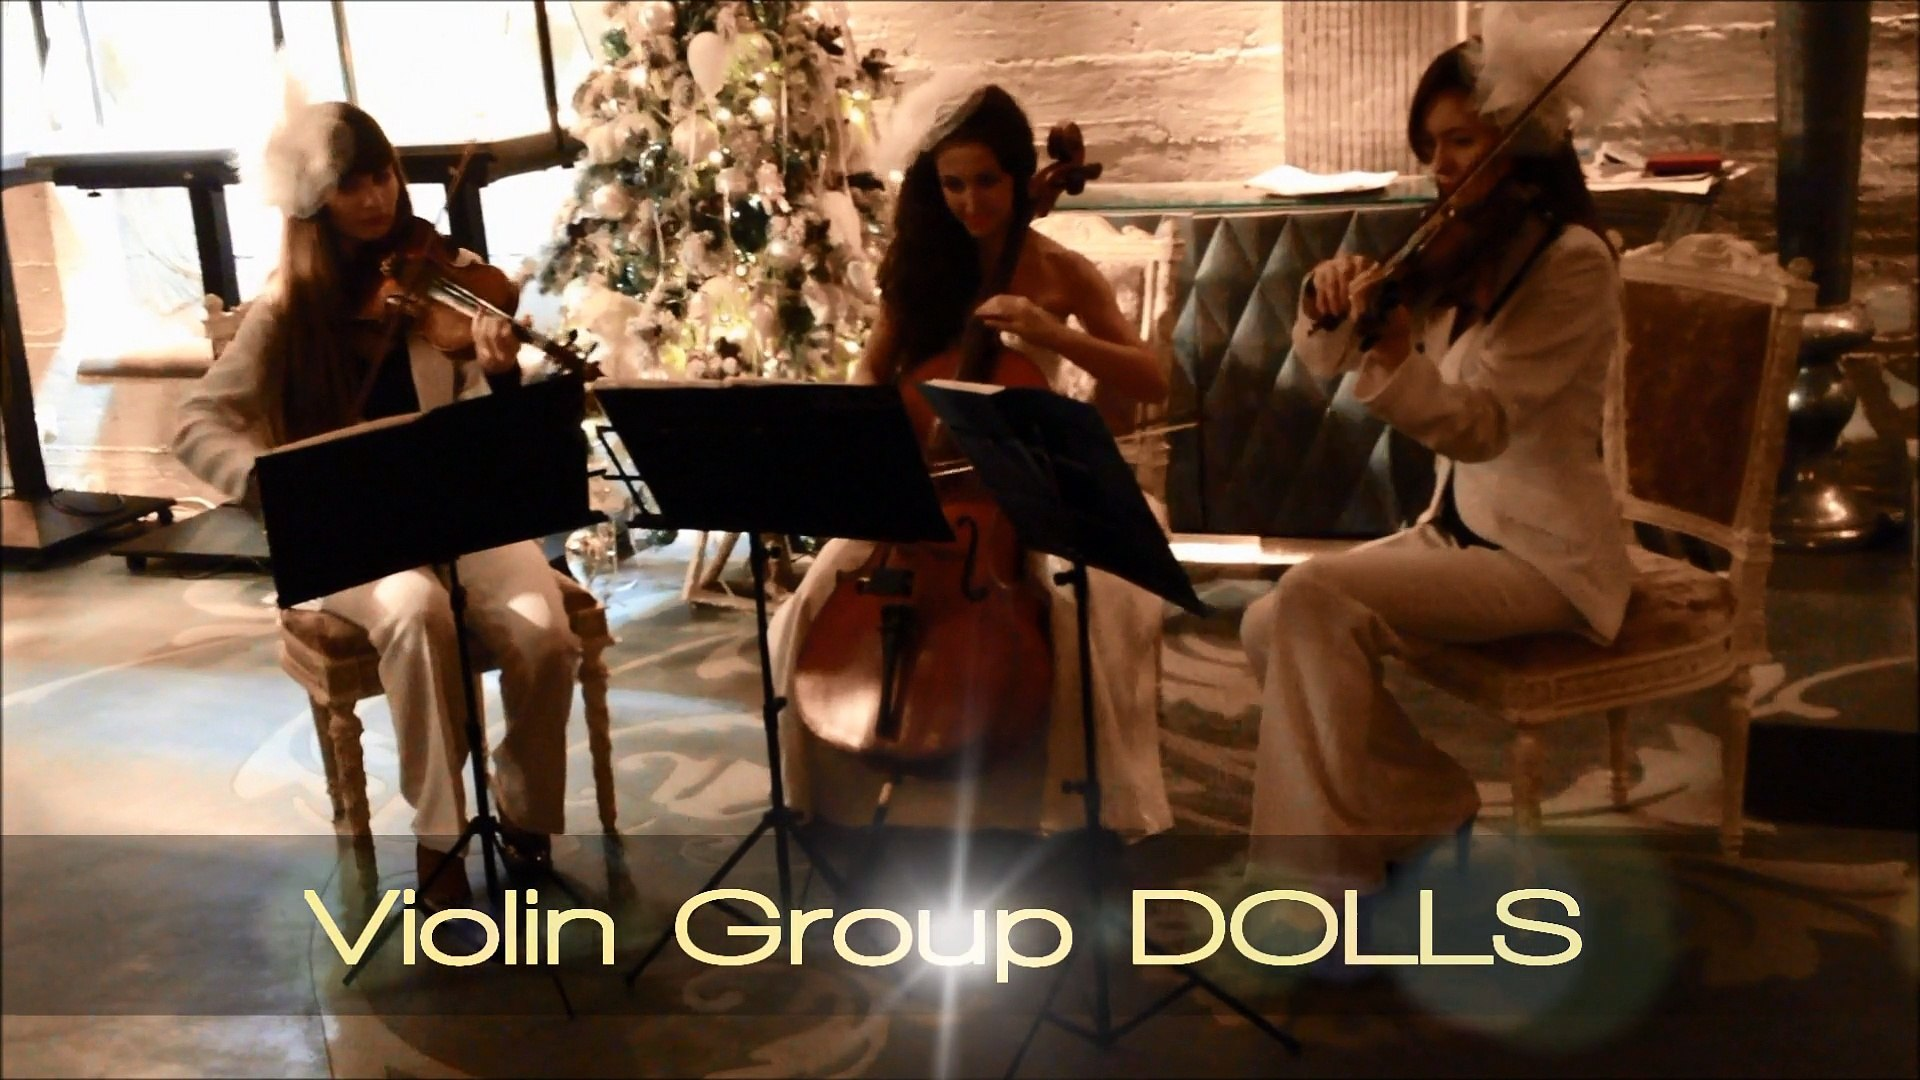 Живая музыка - скрипки и виолончель Violin Group DOLLS, рок, поп